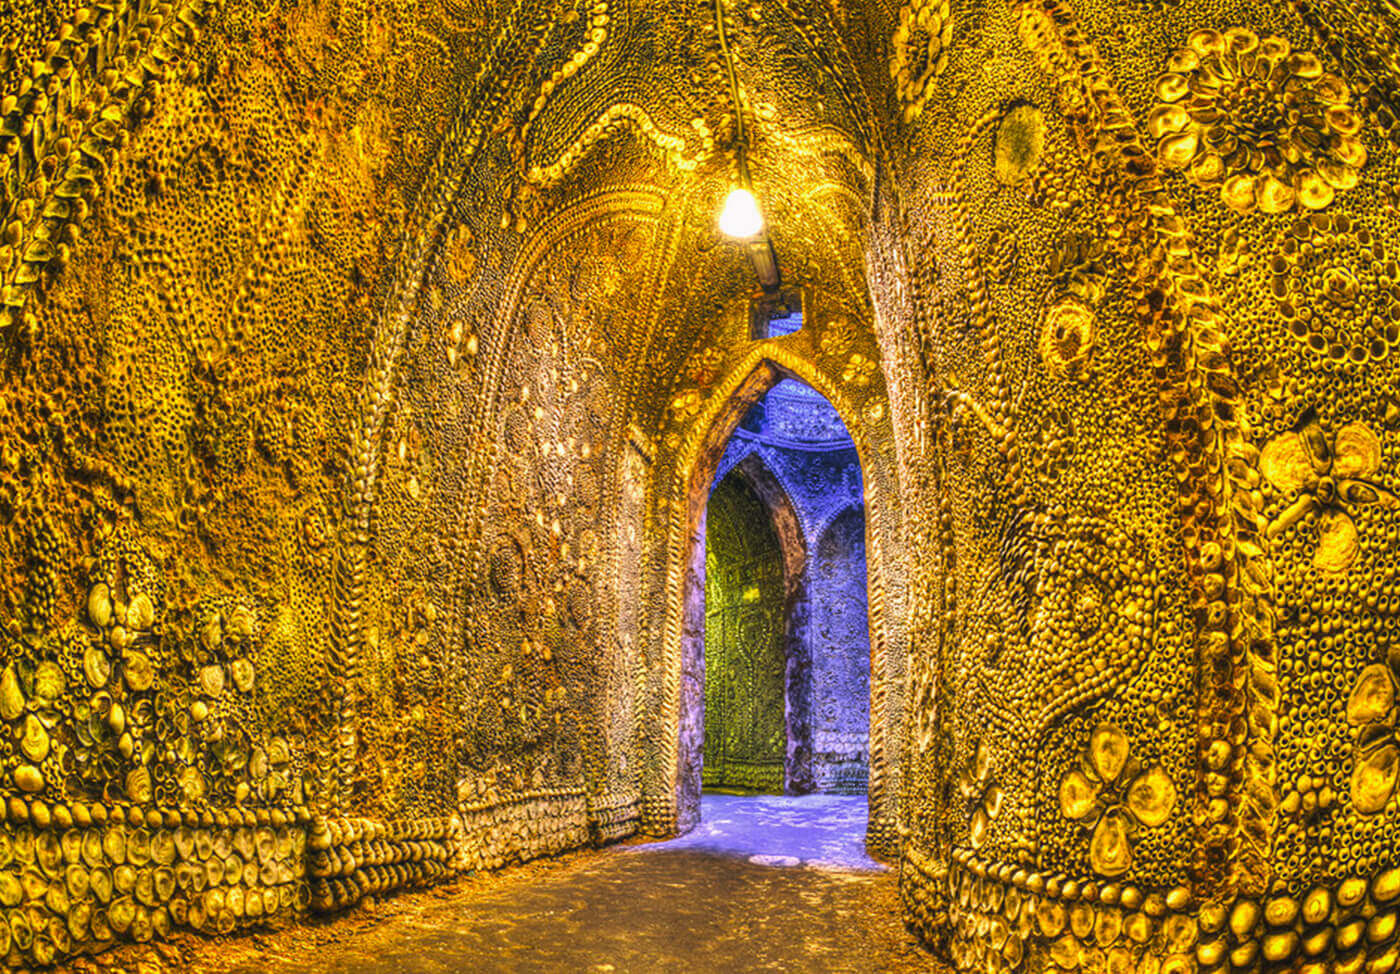 The mystery of Margate's Shell Grotto